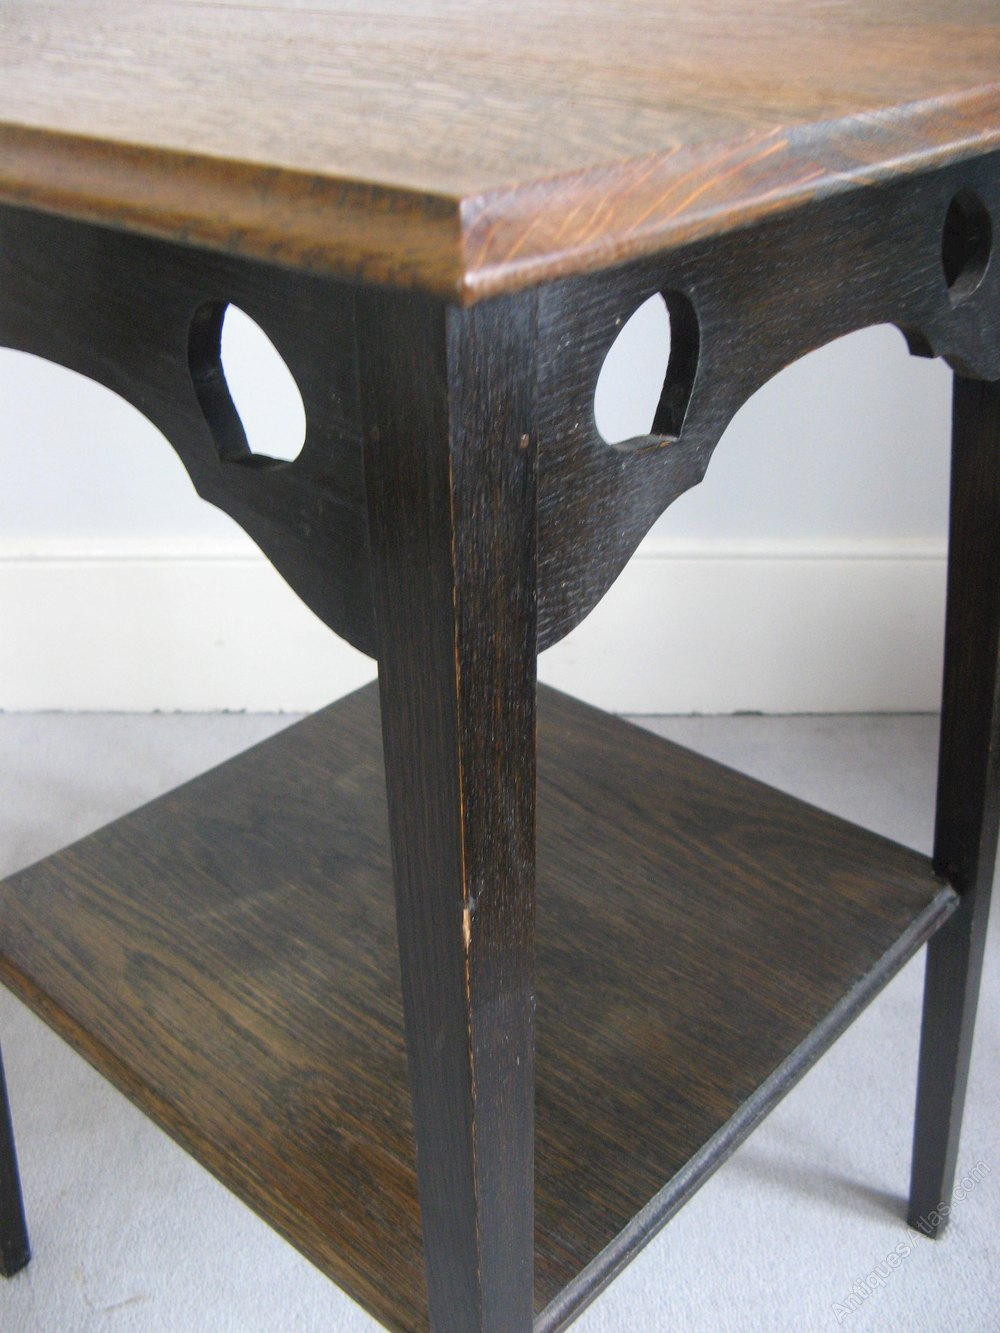 Arts and crafts oak side lamp table with hearts for Arts and crafts side table